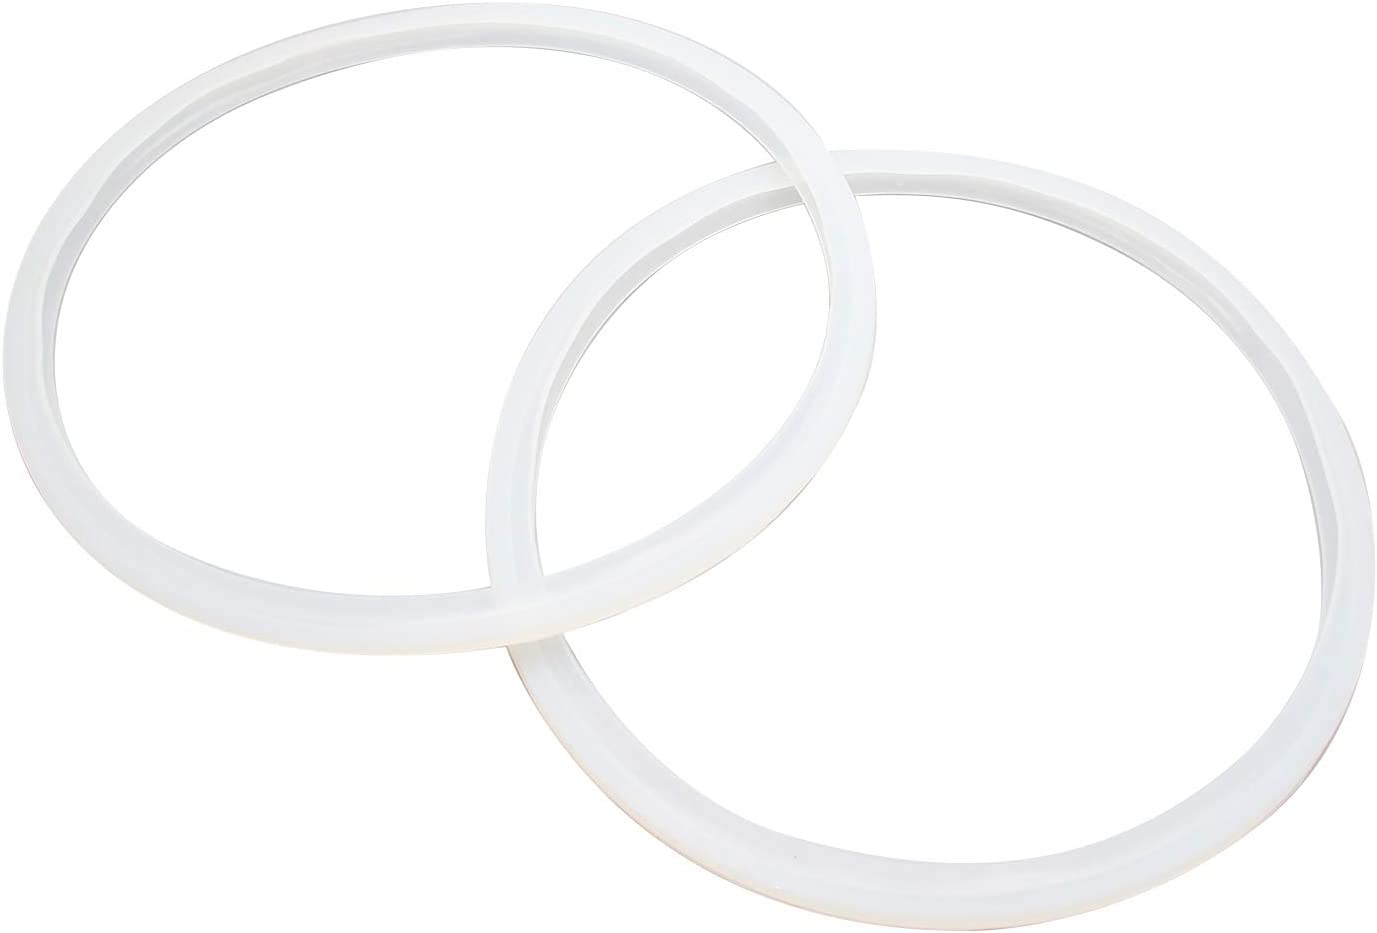 Semetall Pressure Cooker Gasket 2 Pack 7.78 Inch Universal Pressure Cooker Sealing Ring,Pressure Cooker Replacement Gasket (Transparent)